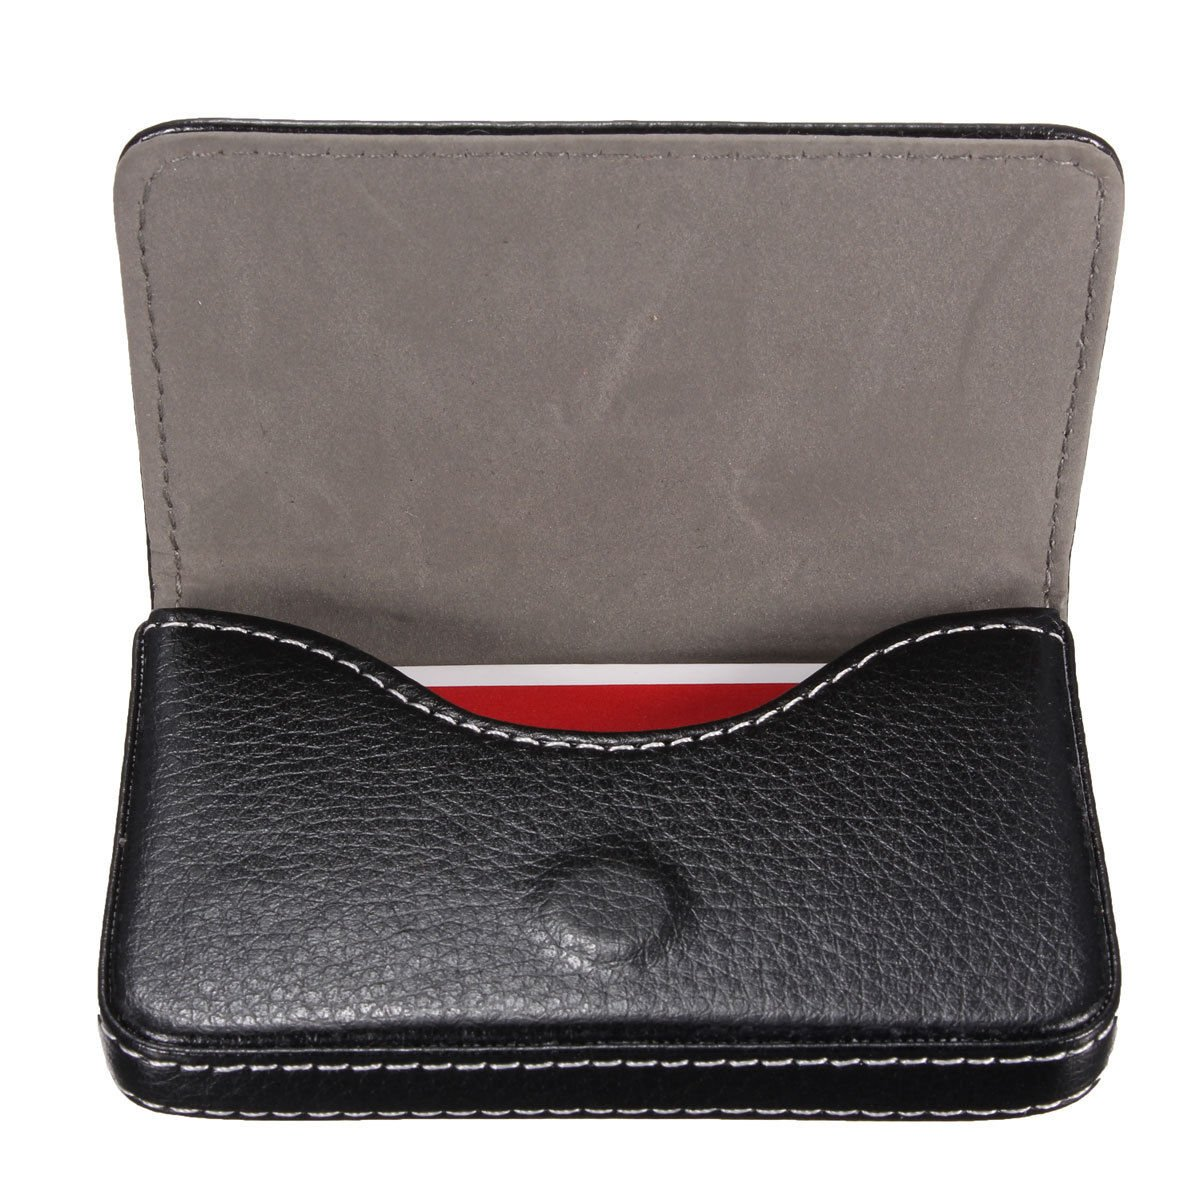 Generic Qy-uk4–16 Feb-20–3257 * 1 * * 5207 * * Coque Nom Crédit N Busin Business Portefeuille Mode Mode Quoi Cas Durable Cuir Keeper Keeper Carte d'identité Support pour Le Cuir Keeper QY-UK4-16FEB-22-1988